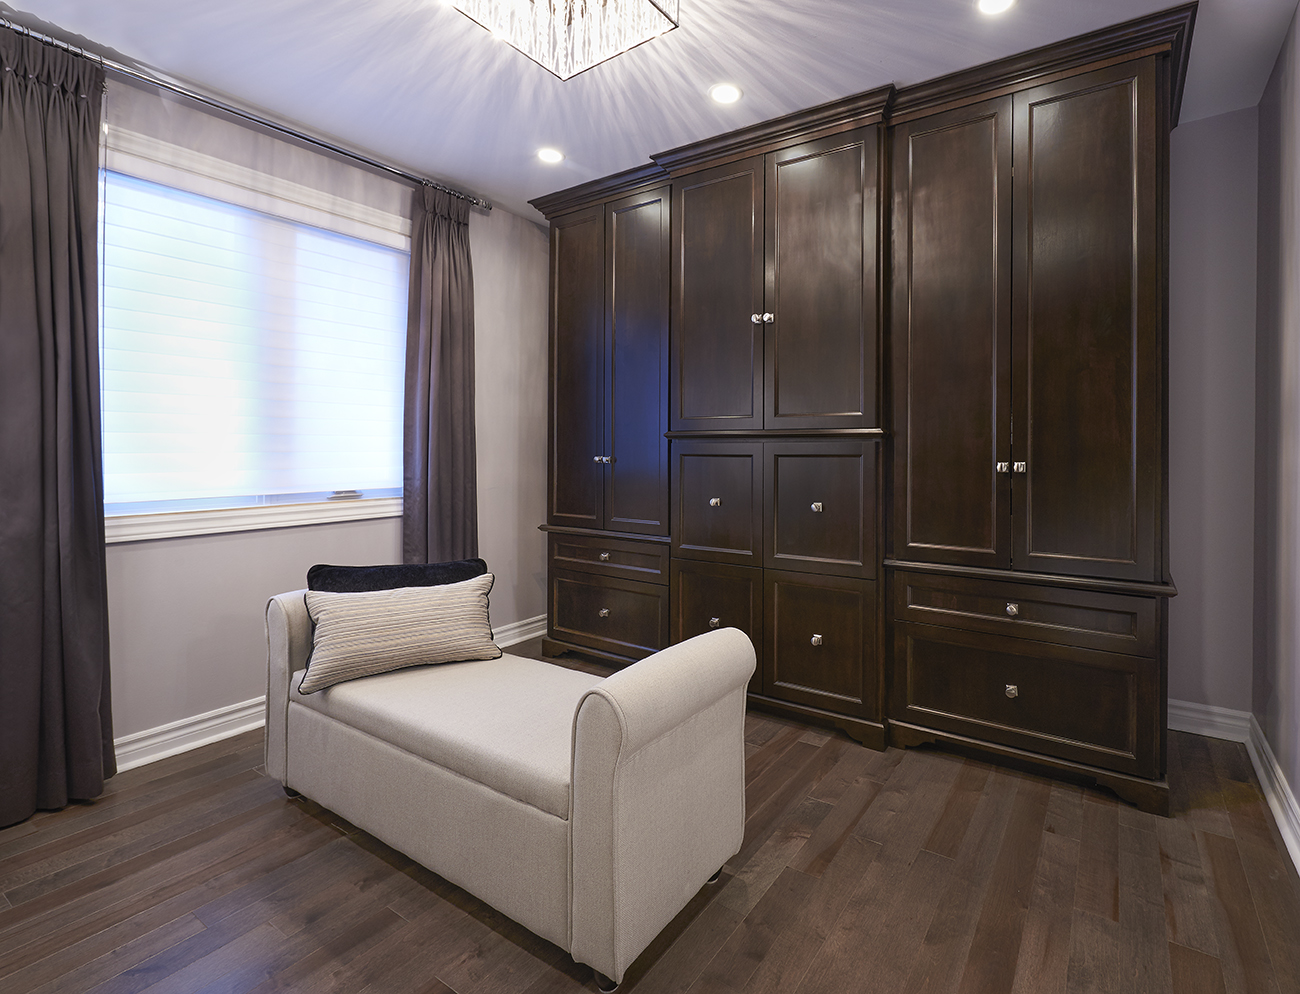 Walk-in Closet with Built-in Cabinetry Armoire